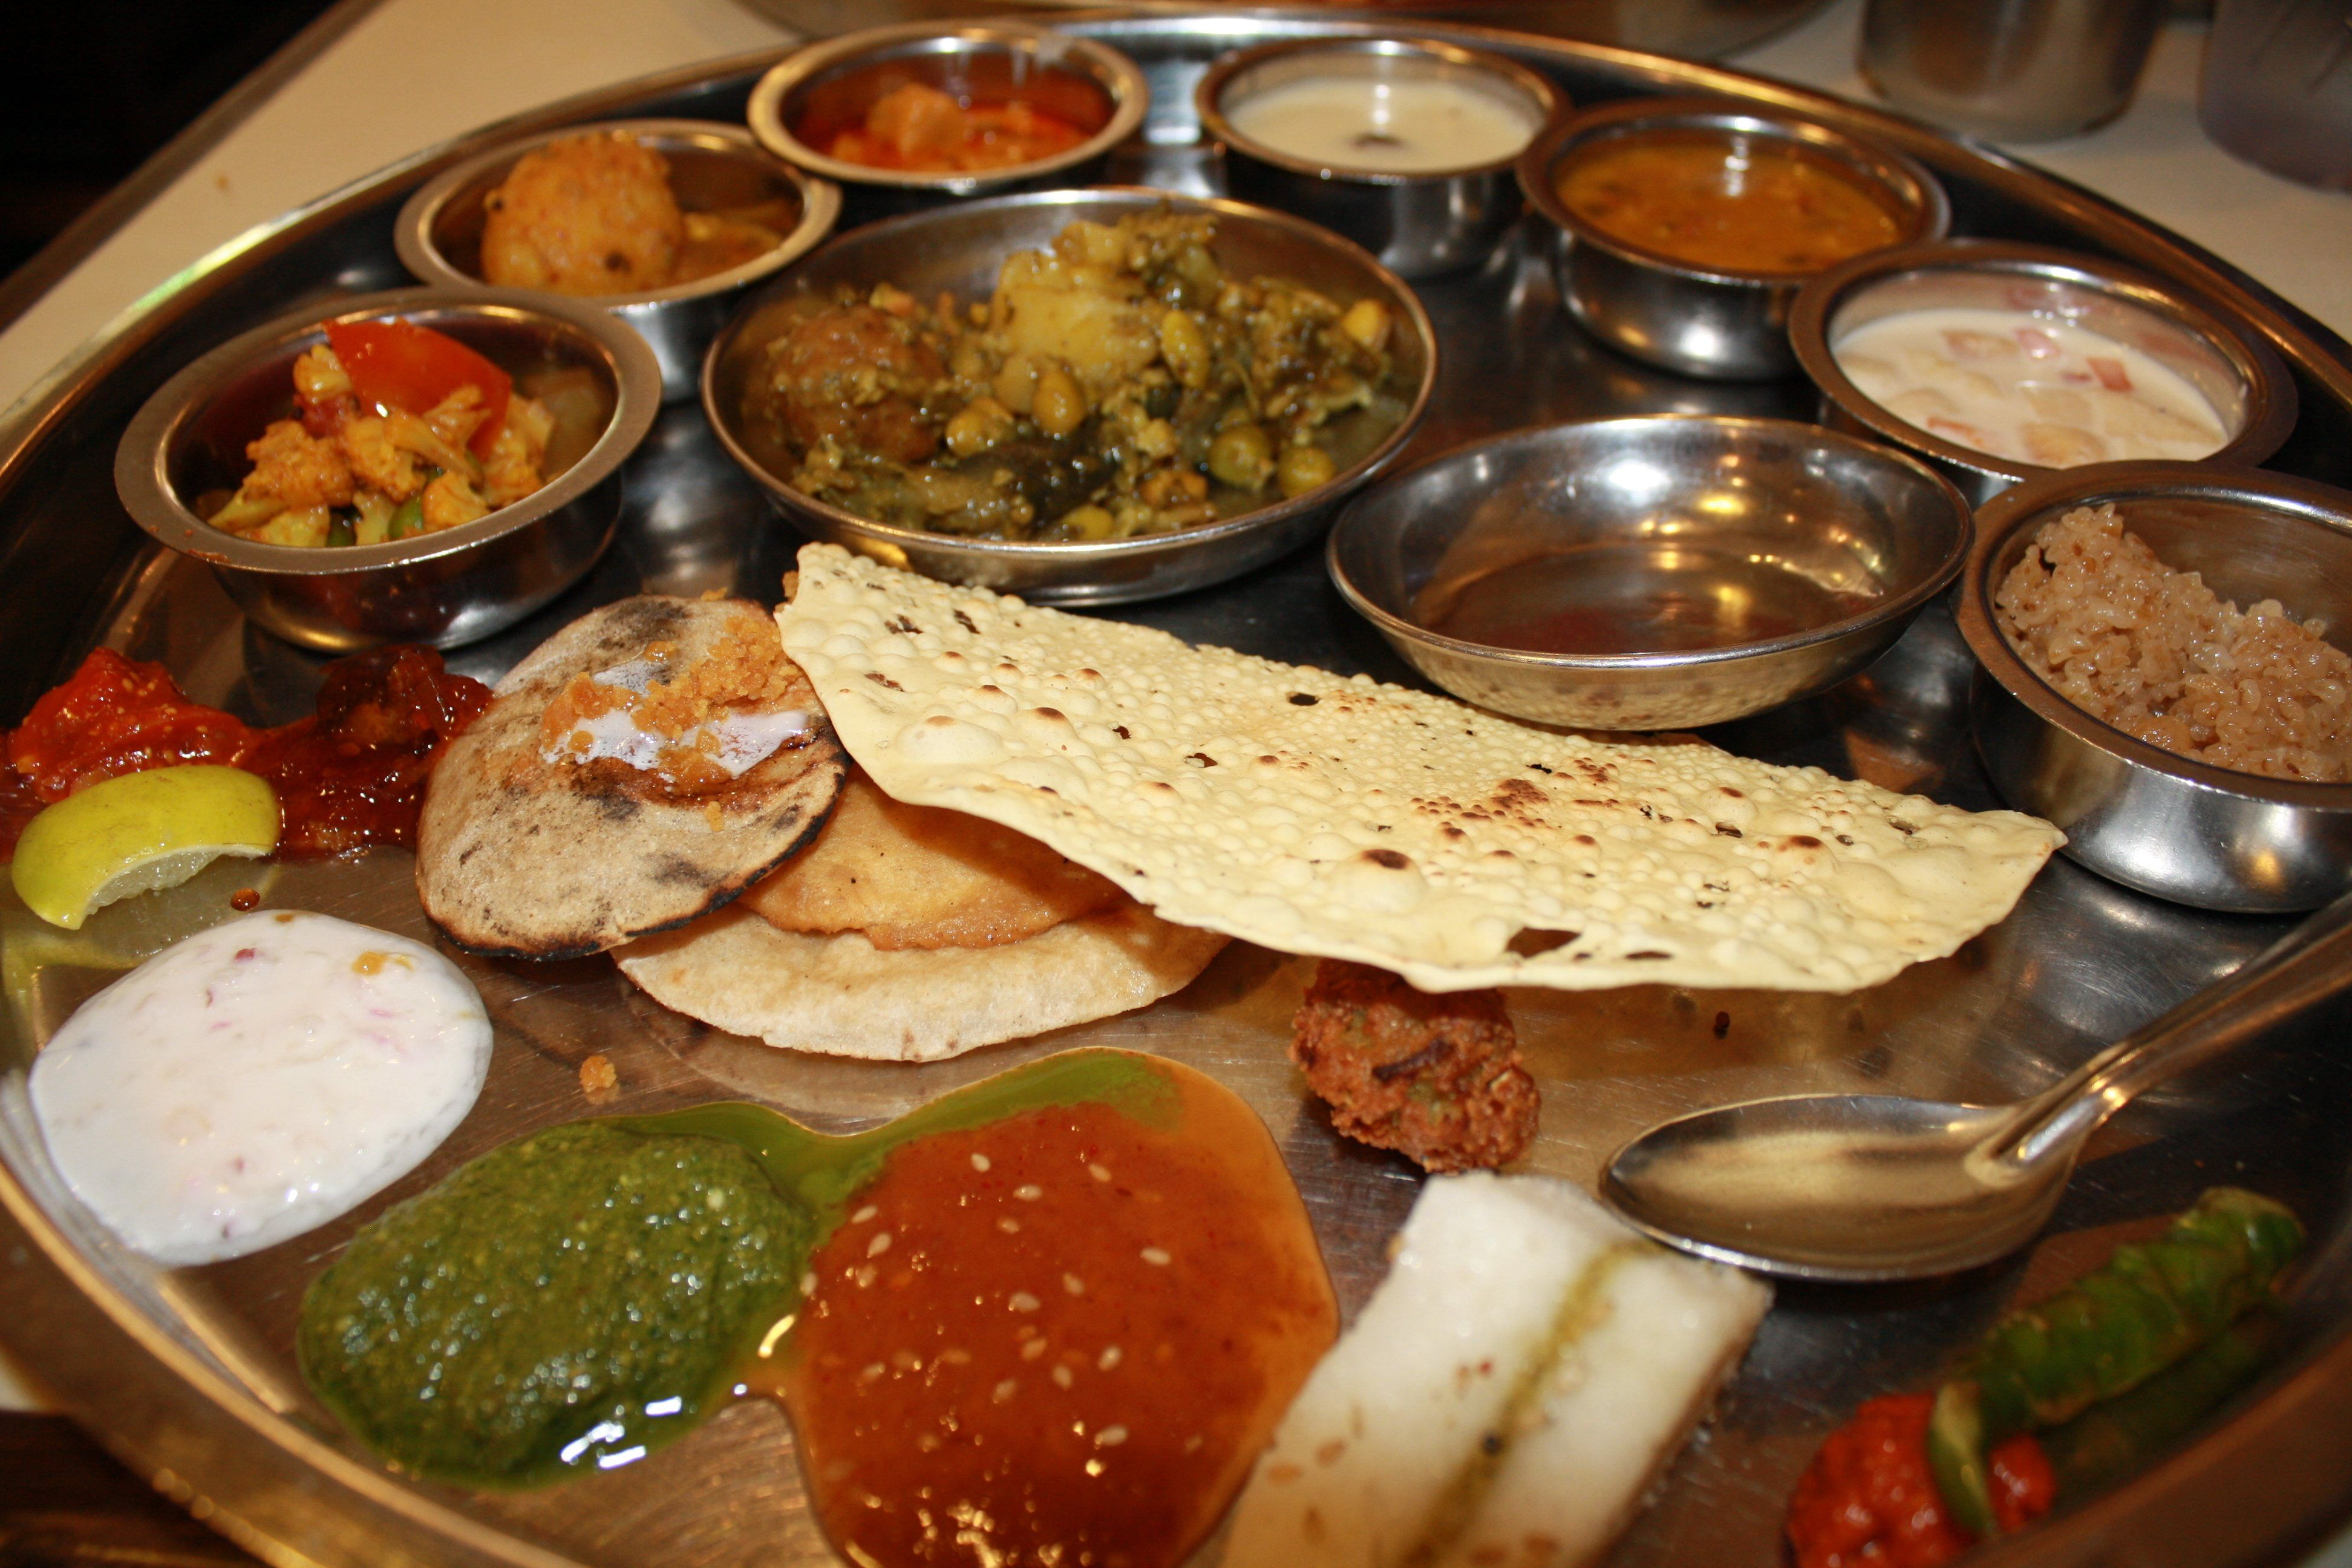 Food India Indian 4k Wallpaper Hdwallpaper Desktop Indian